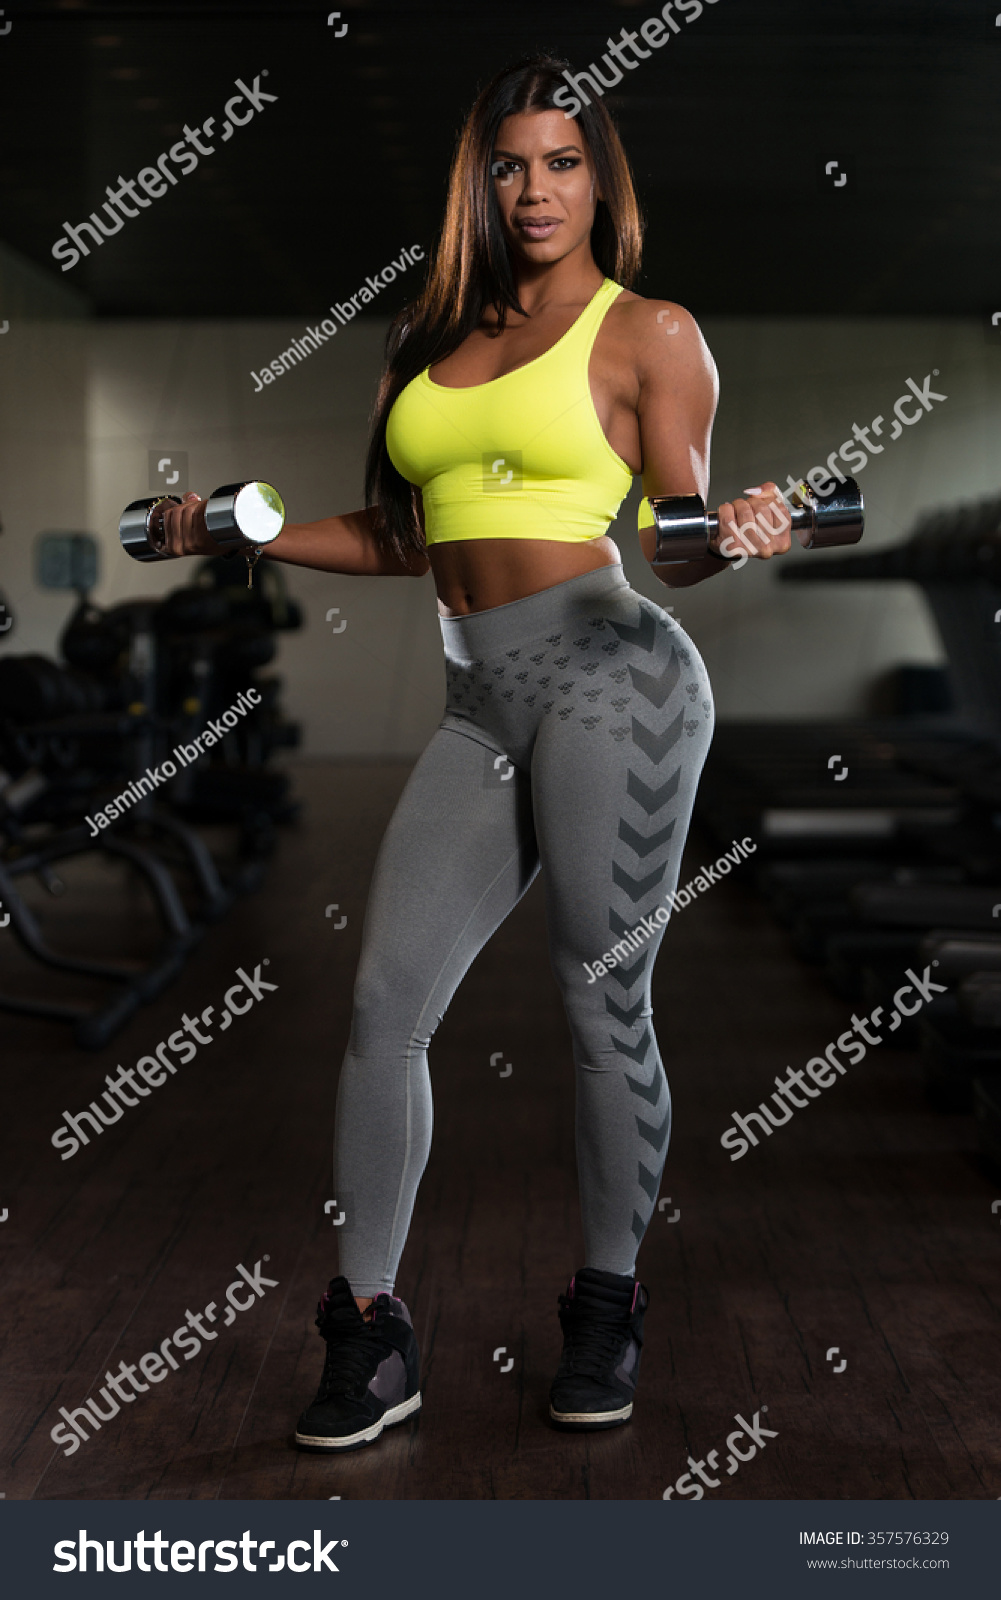 sexy latina woman working out biceps stock photo 357576329